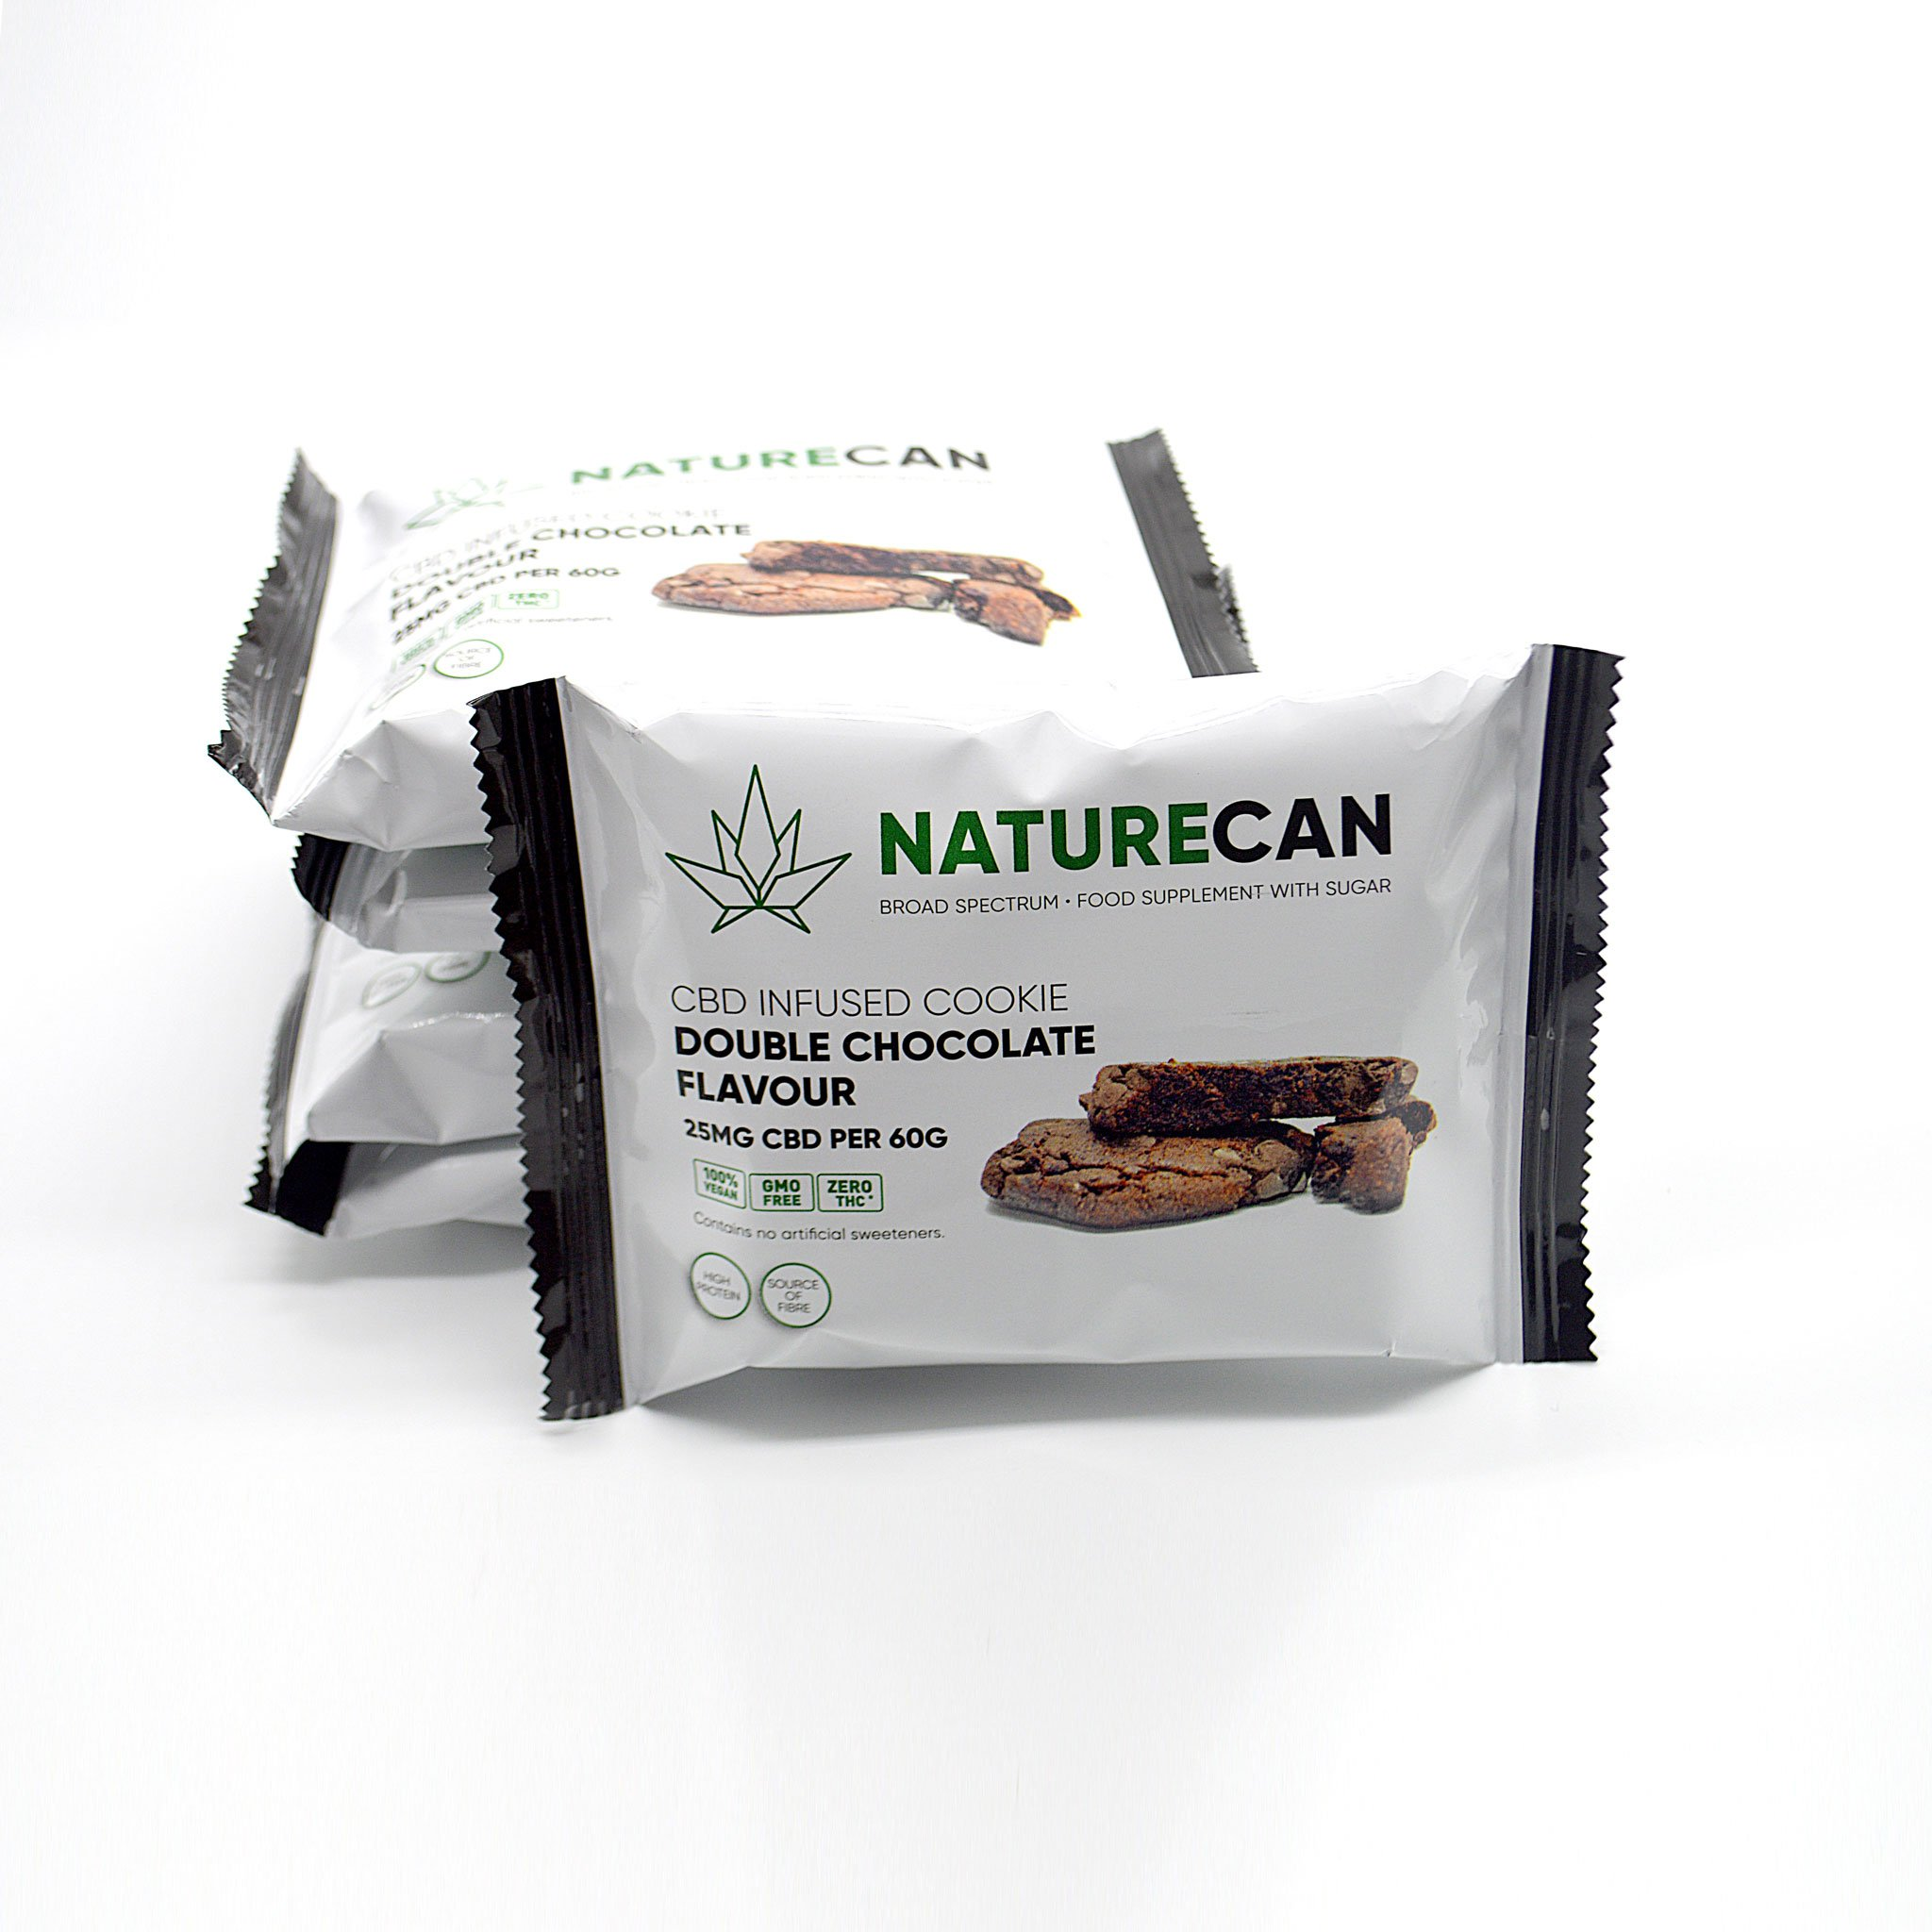 Naturecan 25mg CBD Double Chocolate Vegan Cookie 60g